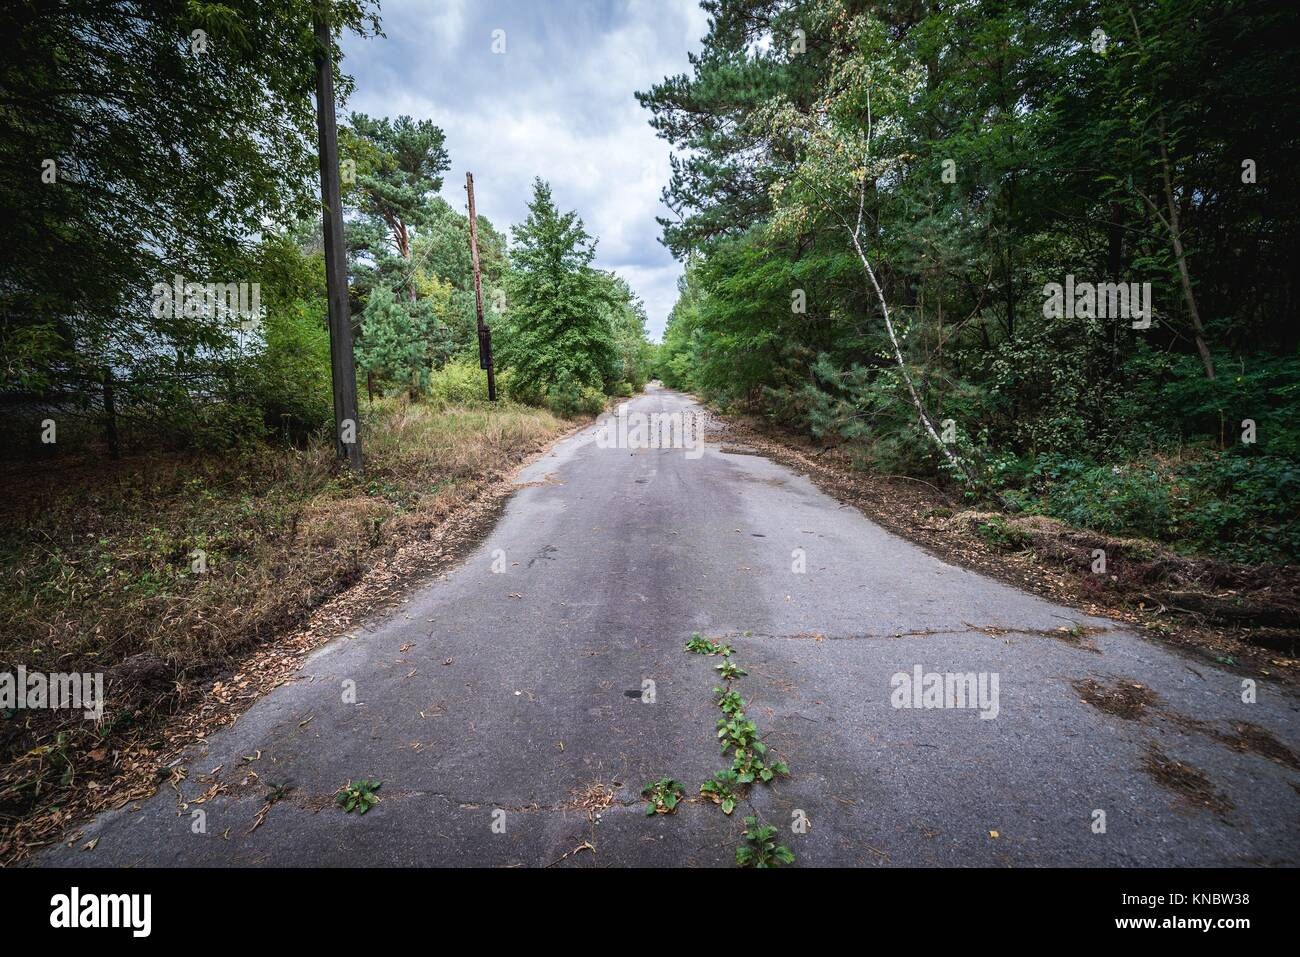 Street in Pripyat ghost city of Chernobyl Nuclear Power Plant Zone of Alienation around nuclear reactor disaster - Stock Image